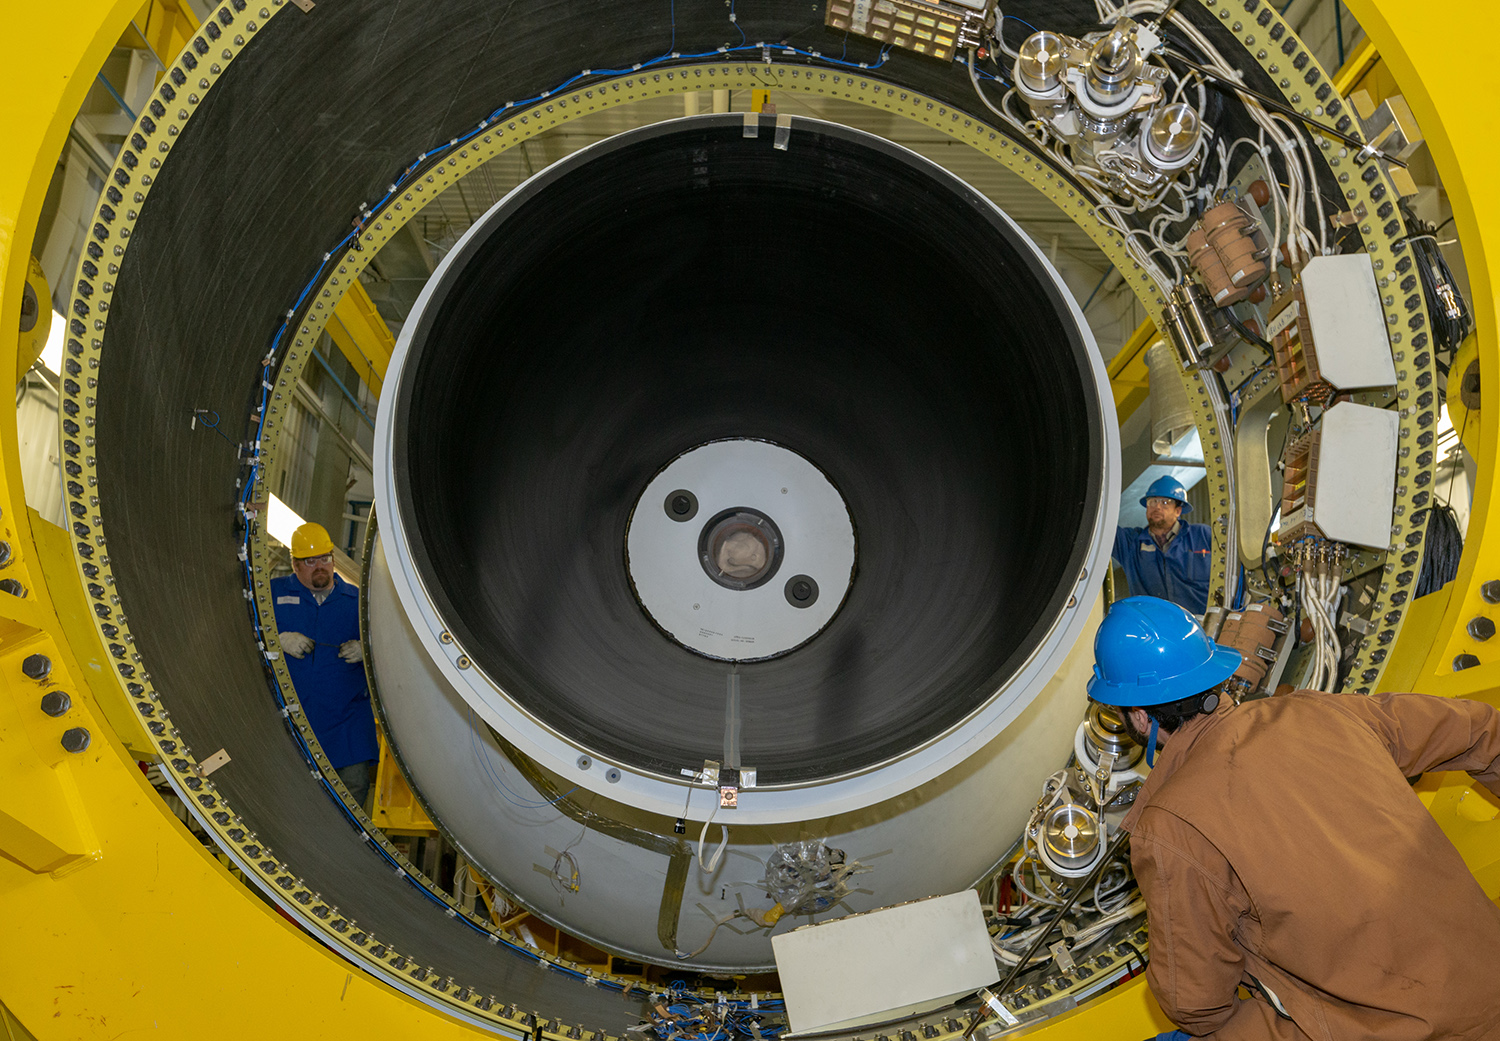 A Northrop Grumman engineer works on installing the aft skirt of the OmegA second stage in preparation for the static test in Promontory, Utah. (February 2020)